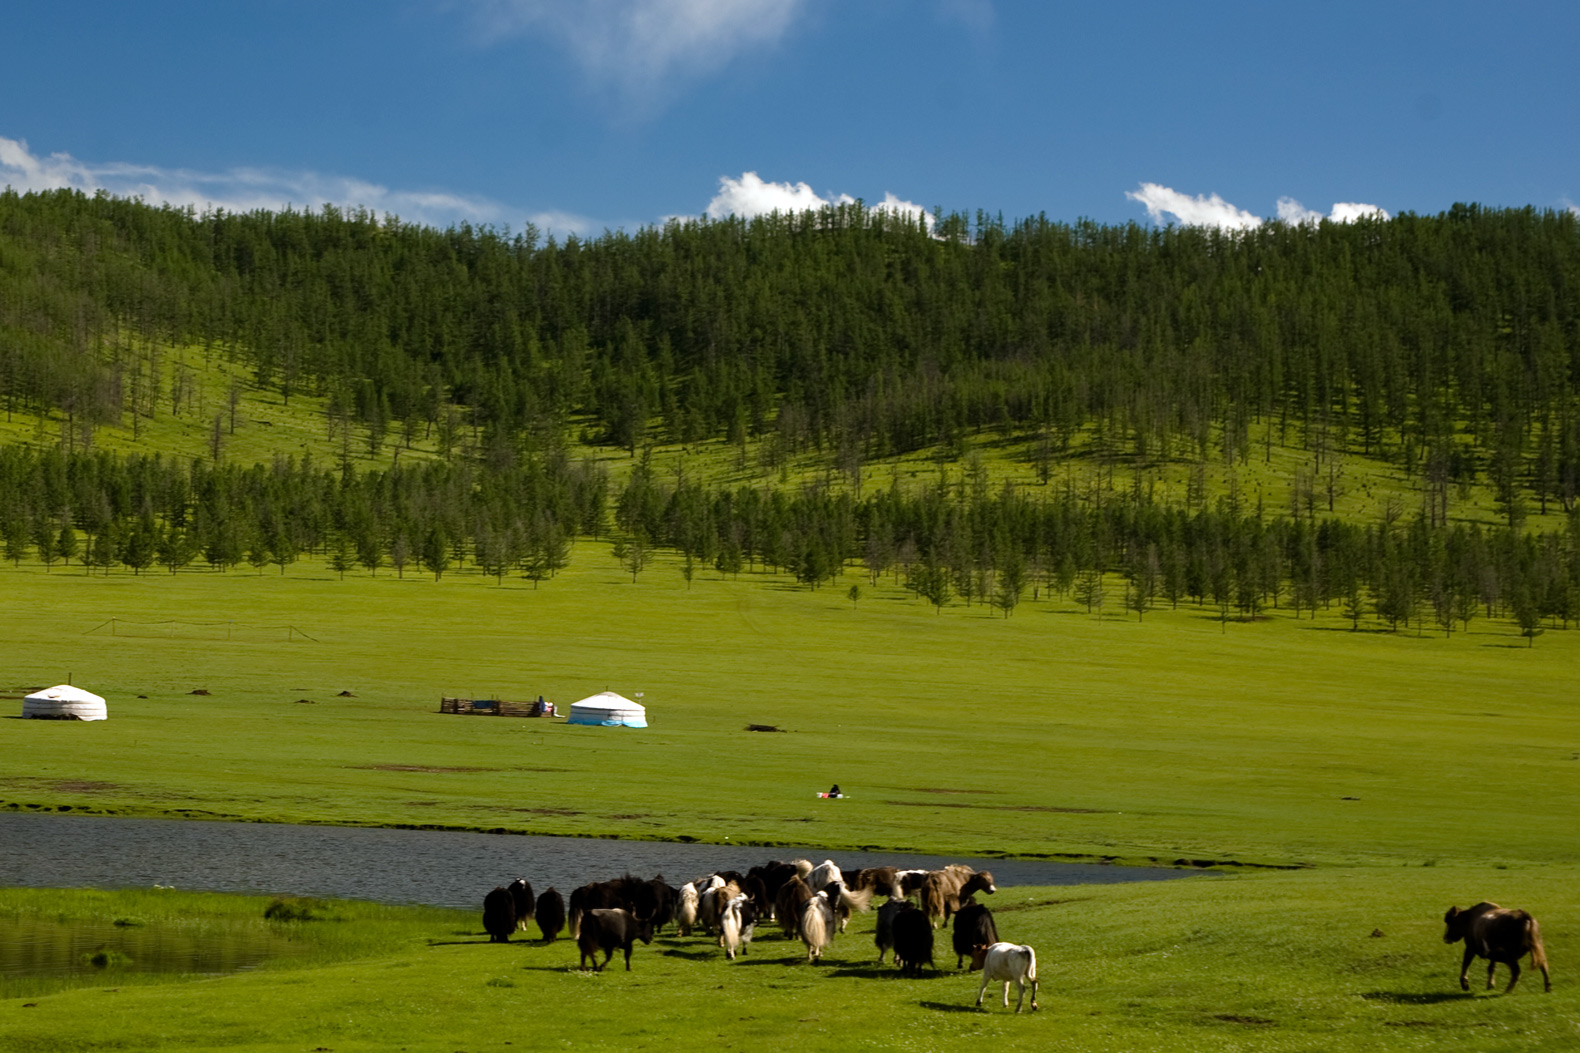 No more neglect: Mongolia says rangelands are a global priority